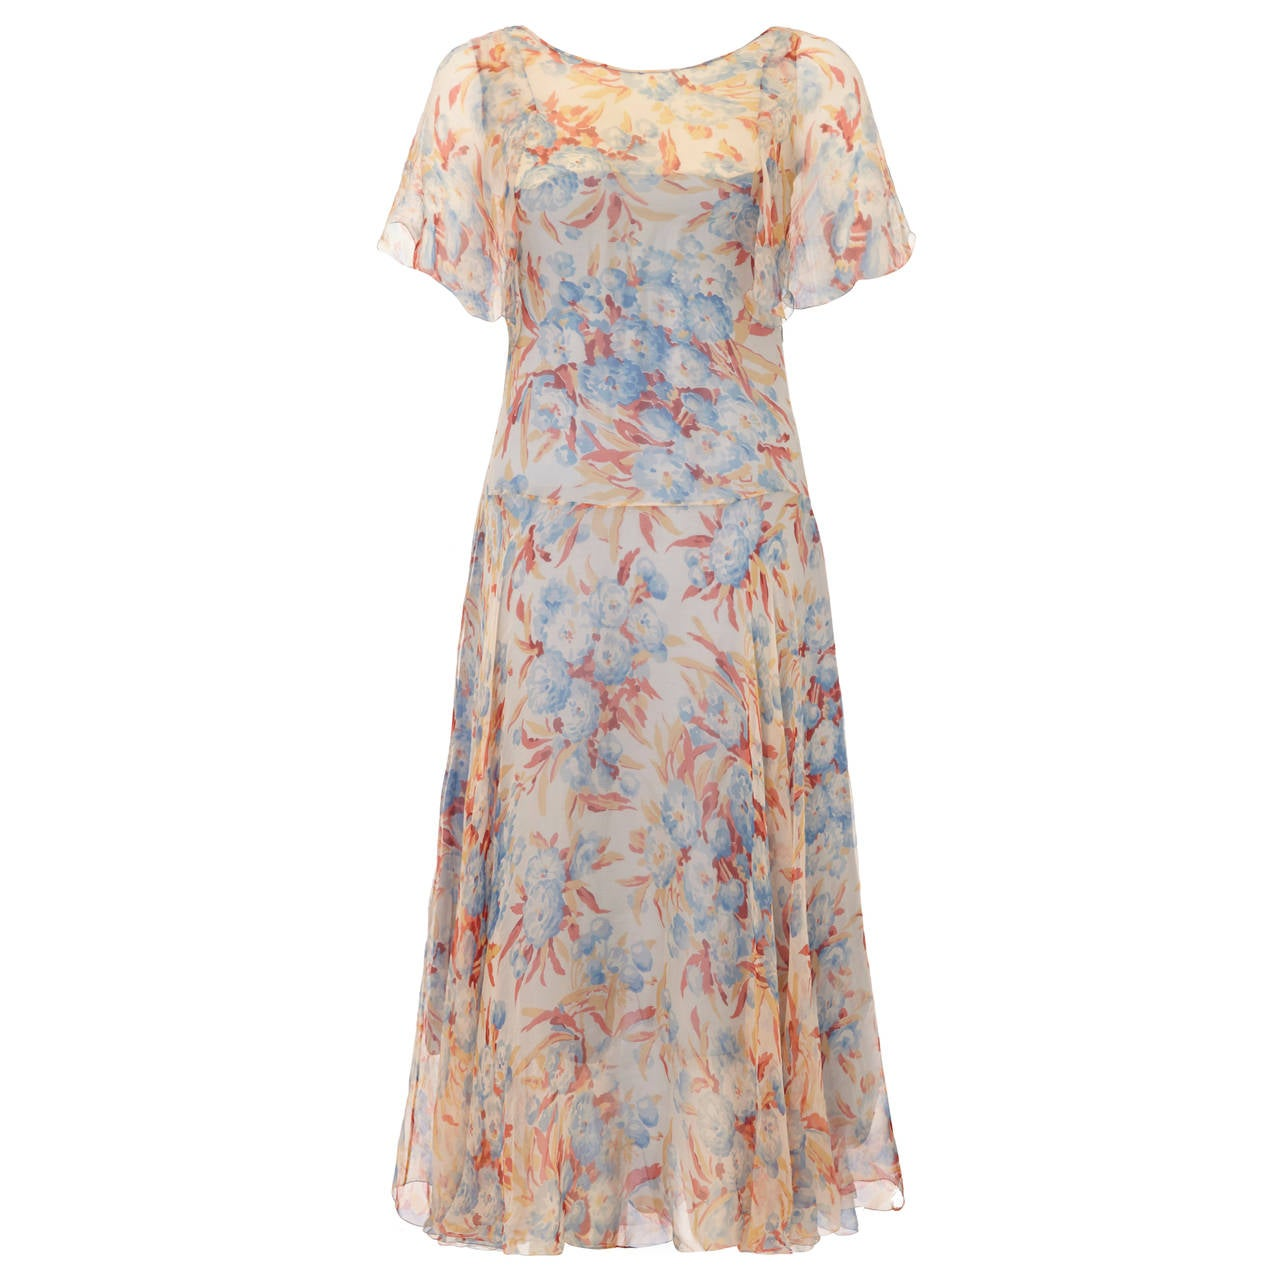 Outstanding 1920s Silk Chiffon Floral Dress For Sale